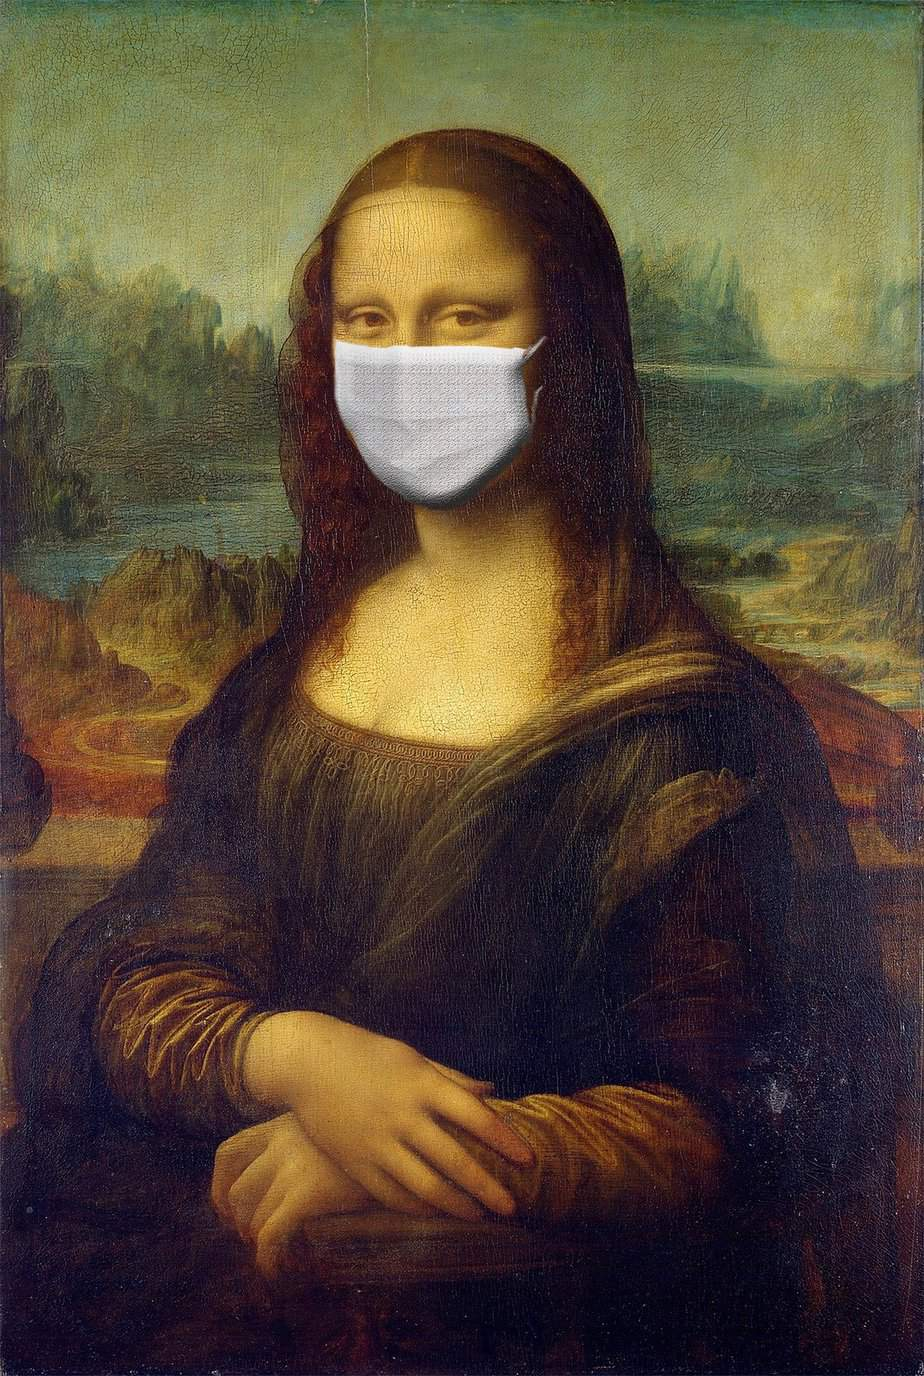 TalkInFrench.com Mona Lisa Mask